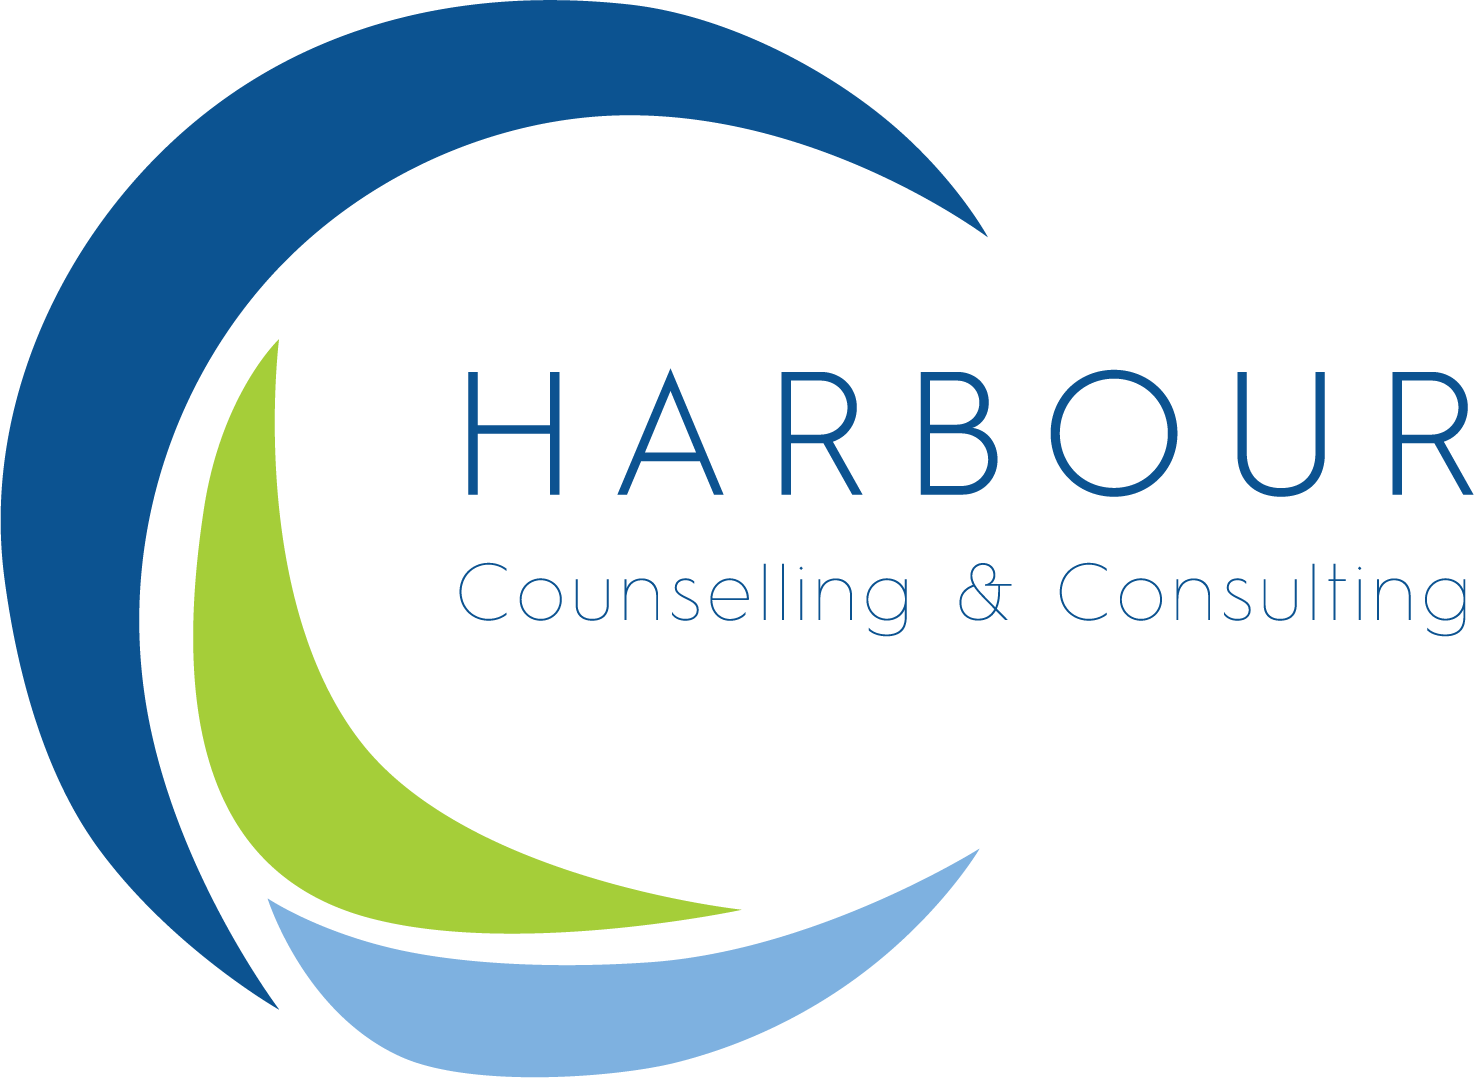 harbour counselling logo